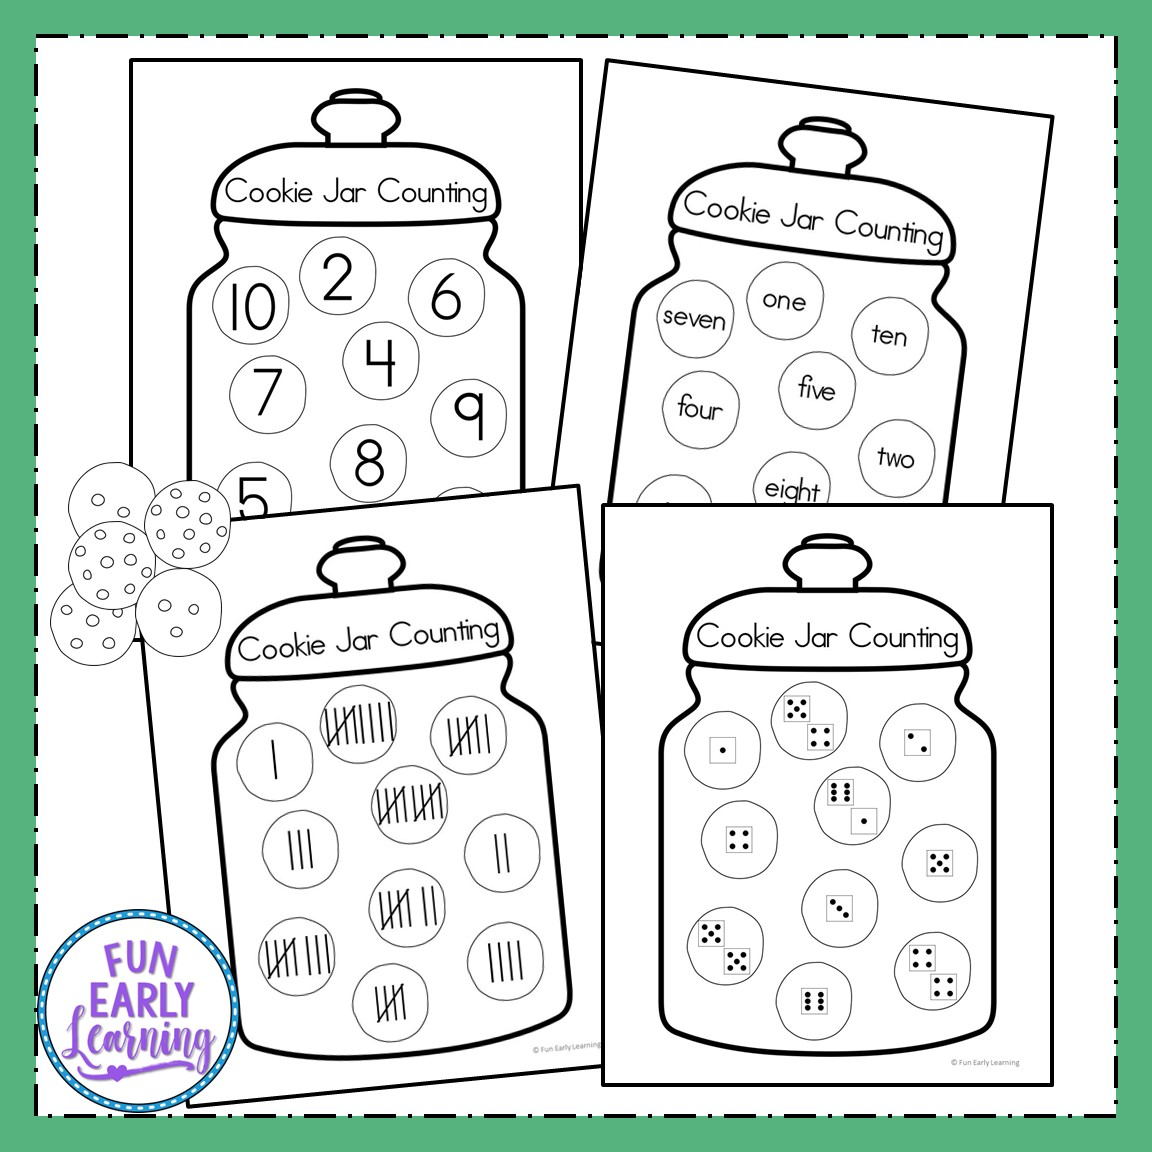 Fun Cookie Jar Counting Activity For Preschool And